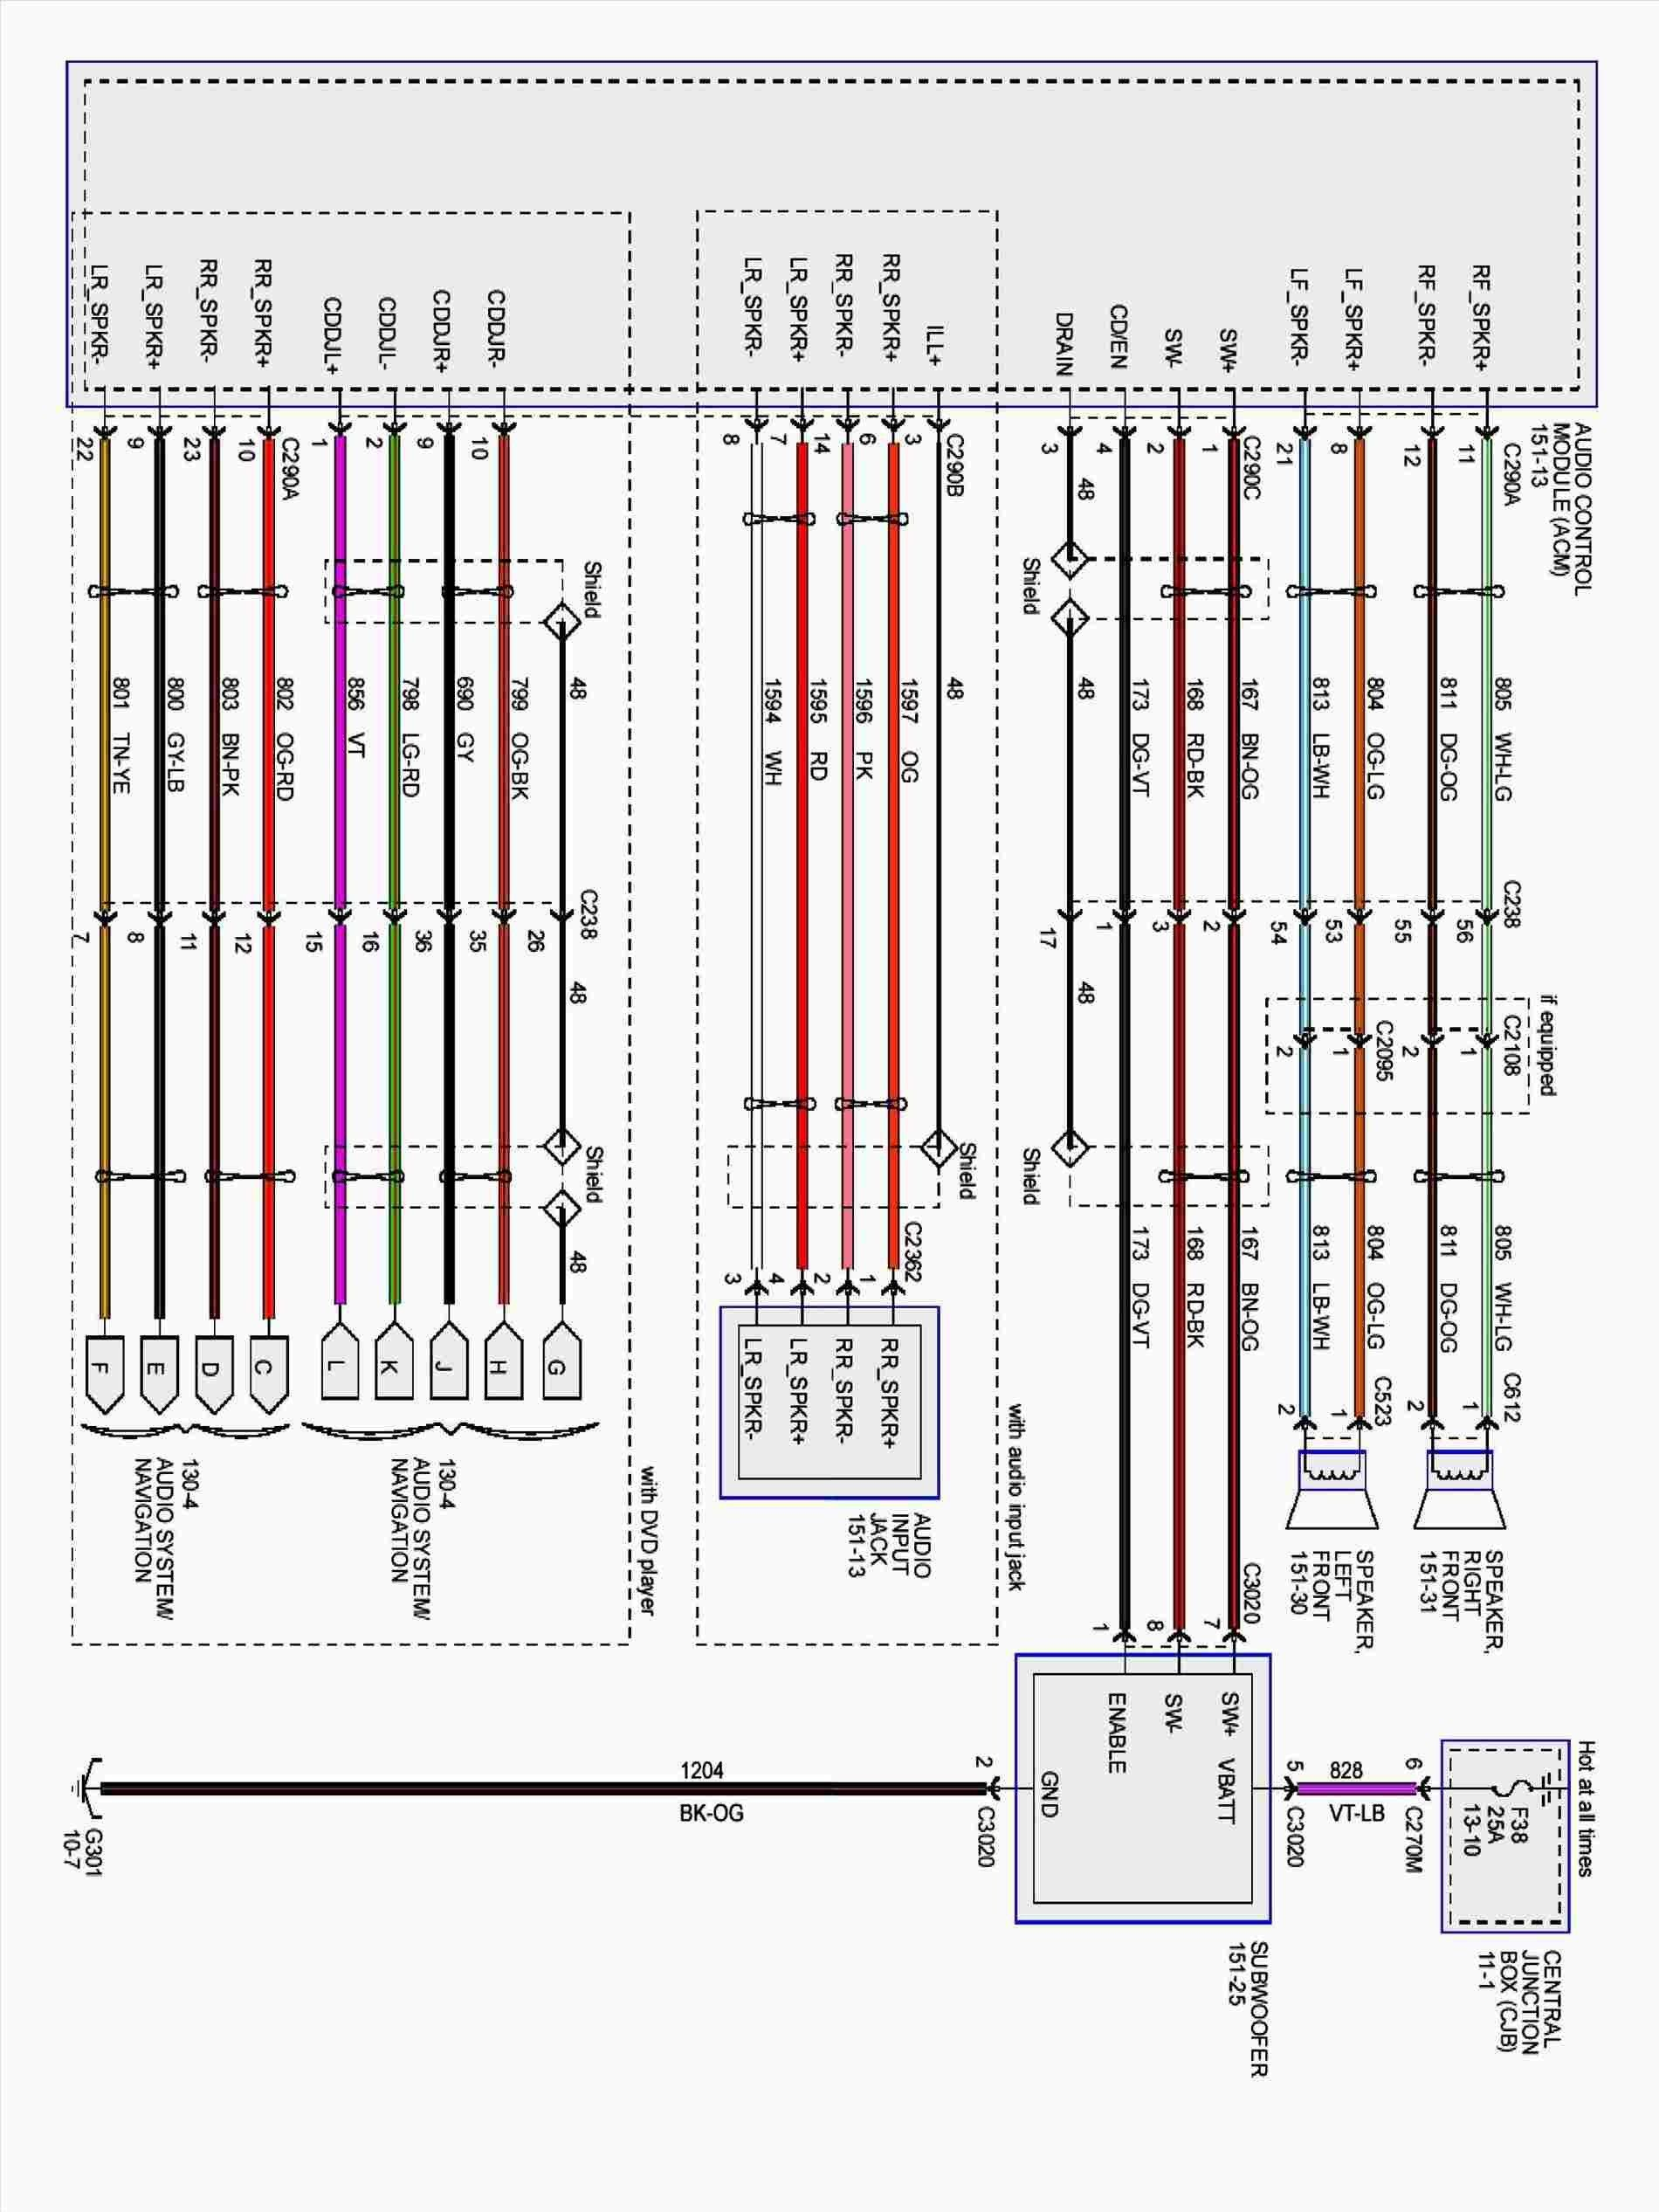 Pin by Trudy Mccoy on Diagram Sample Diagram, Wire, Car